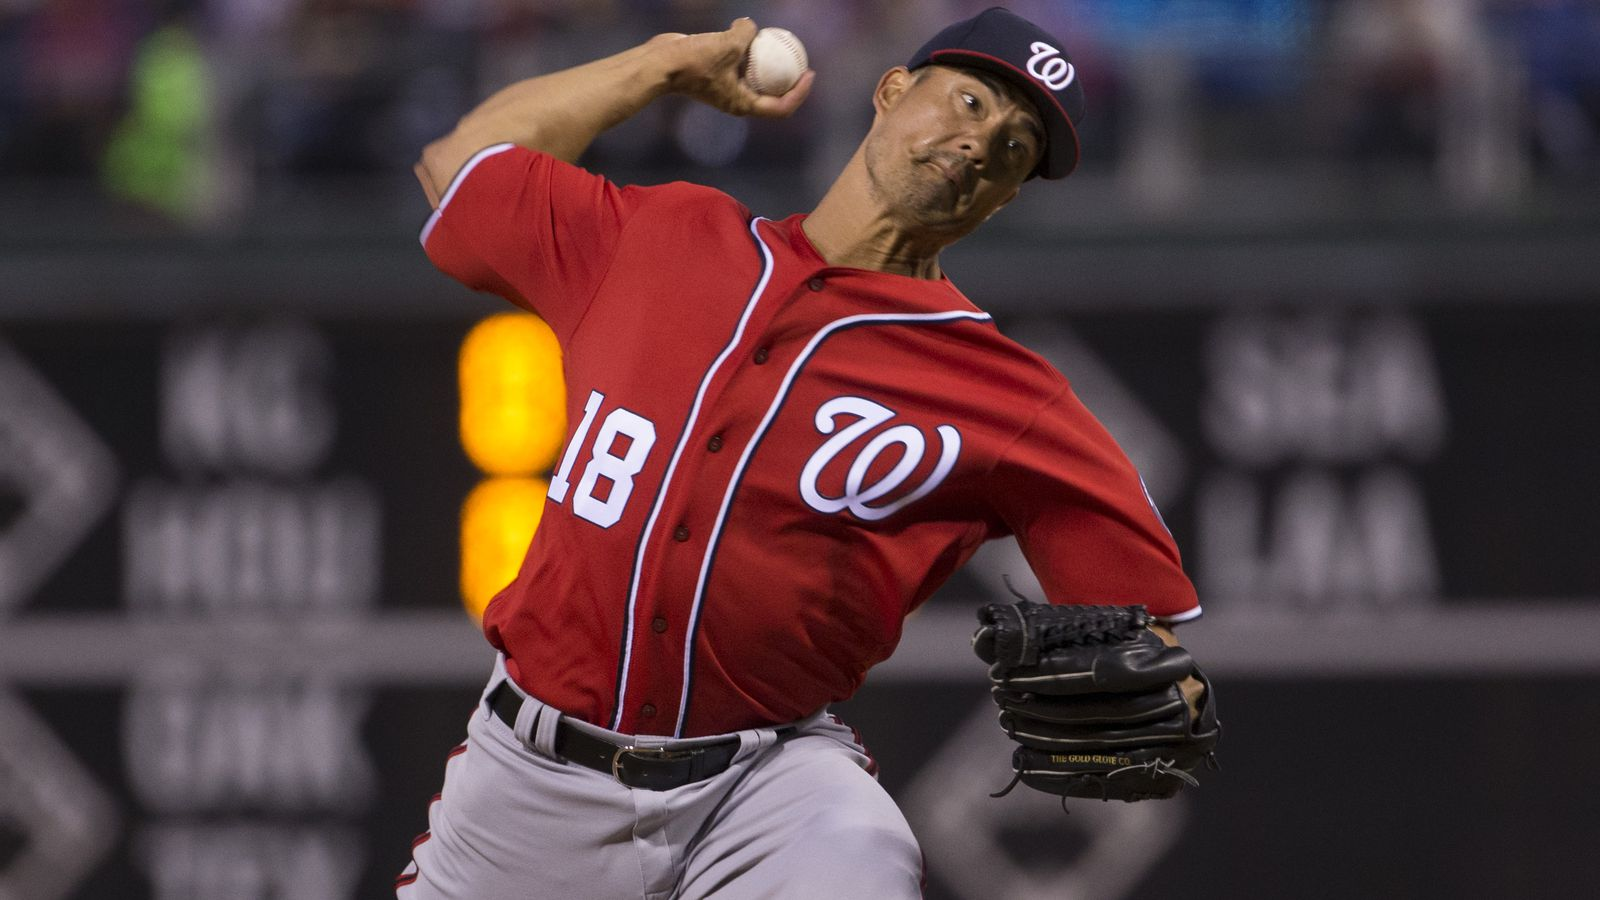 Jeremy Guthrie tweets about his rough outing - Federal ...